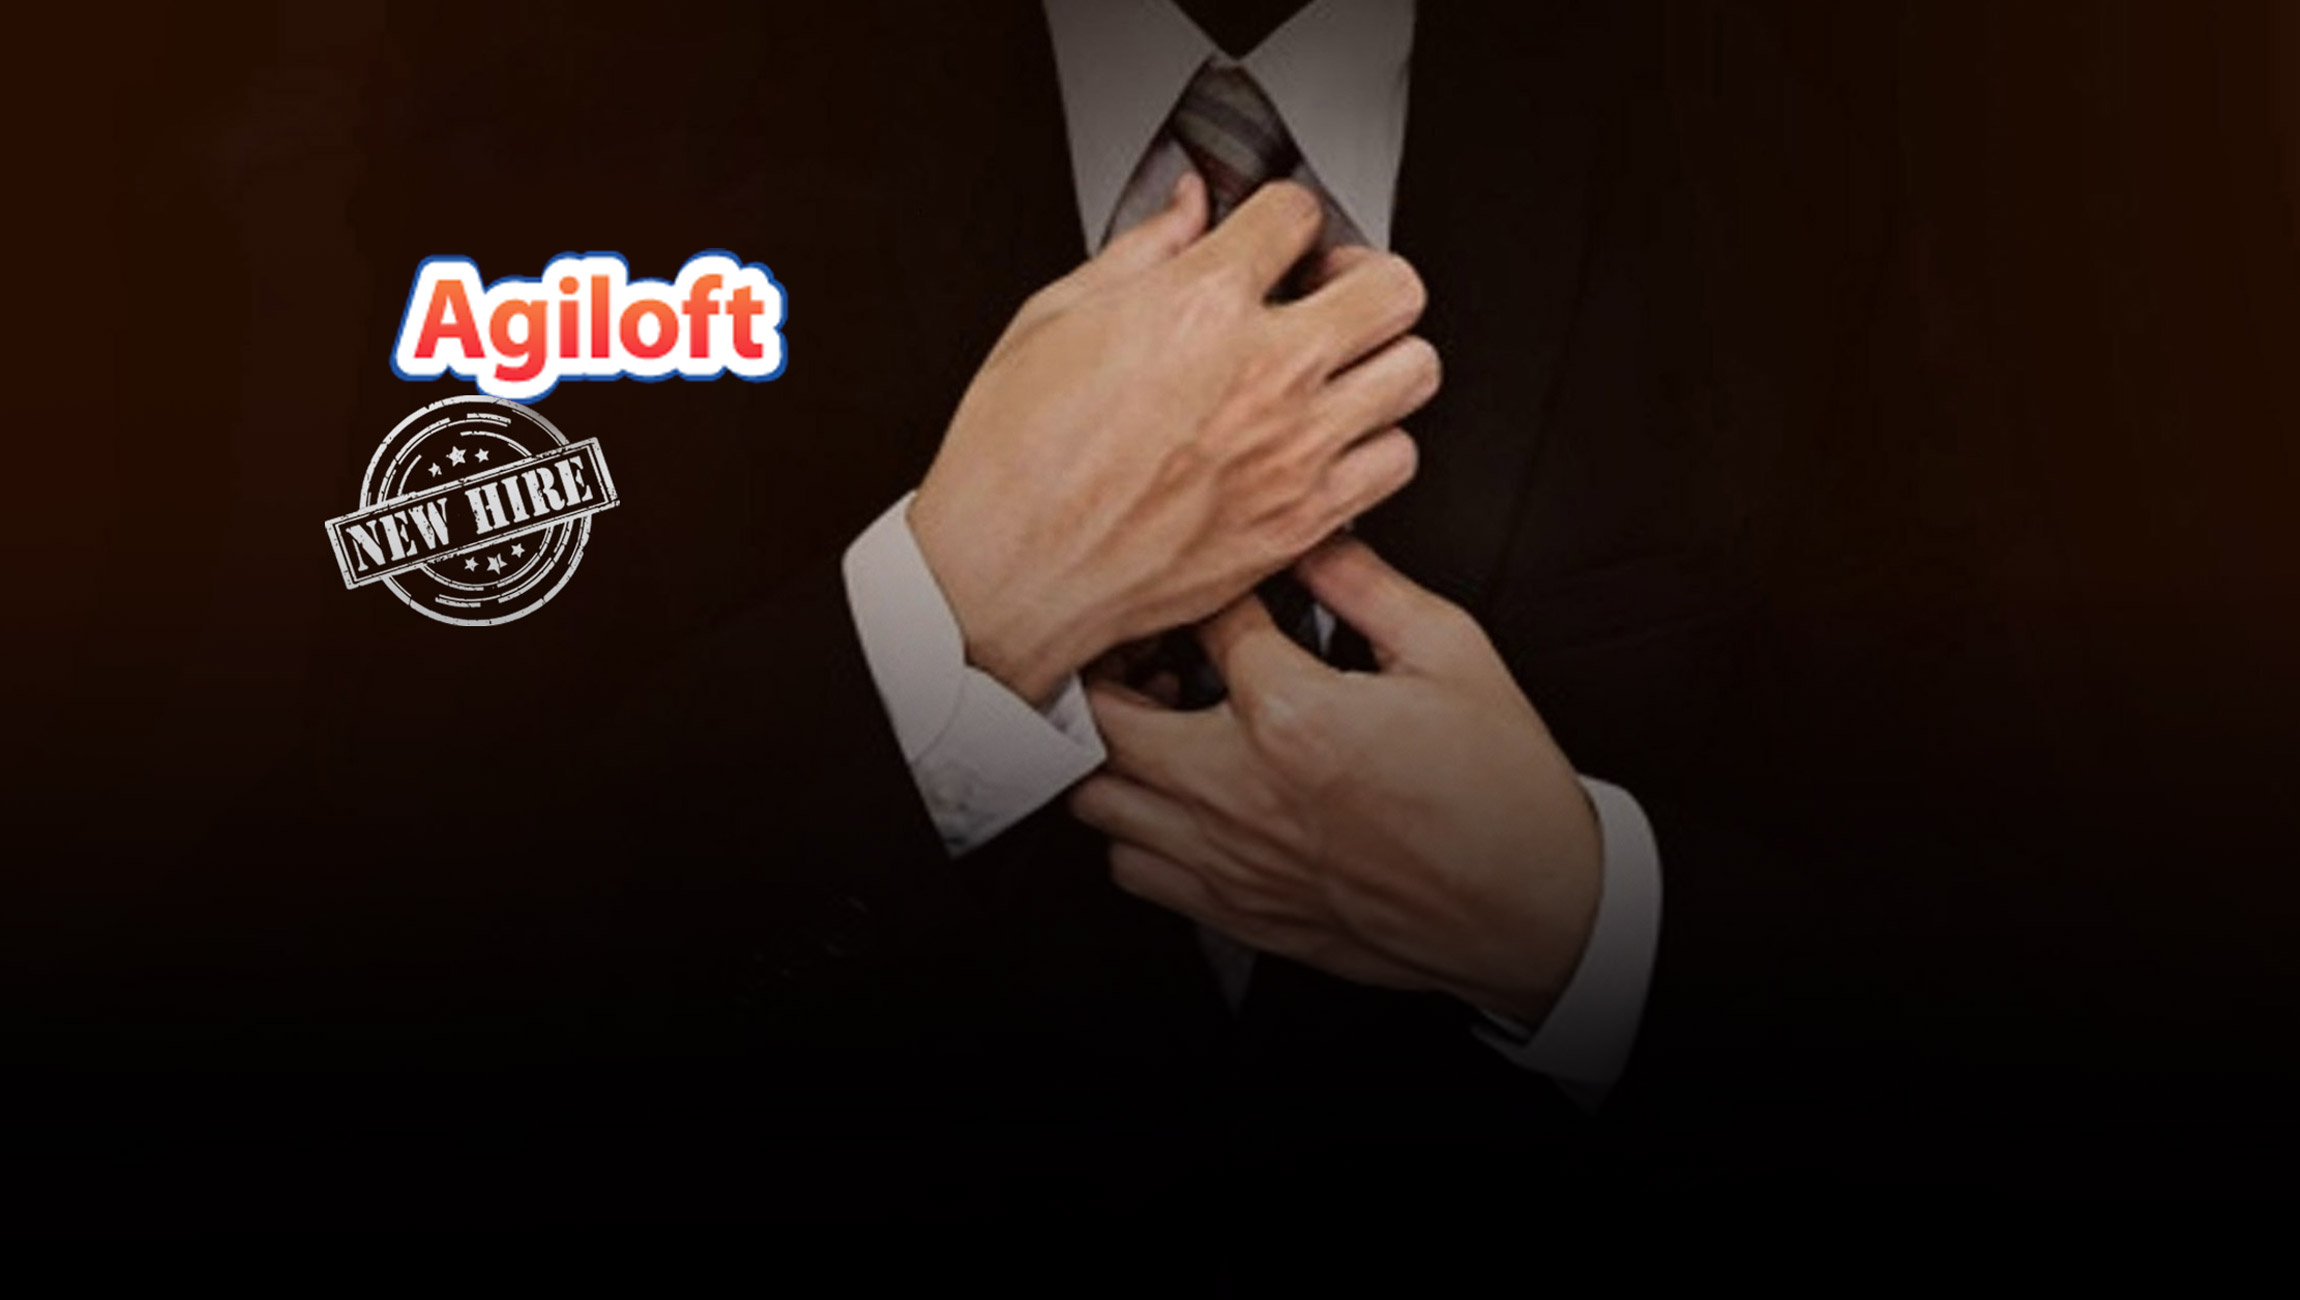 Agiloft Appoints Andy Wishart Chief Product Officer to Accelerate Product Innovation